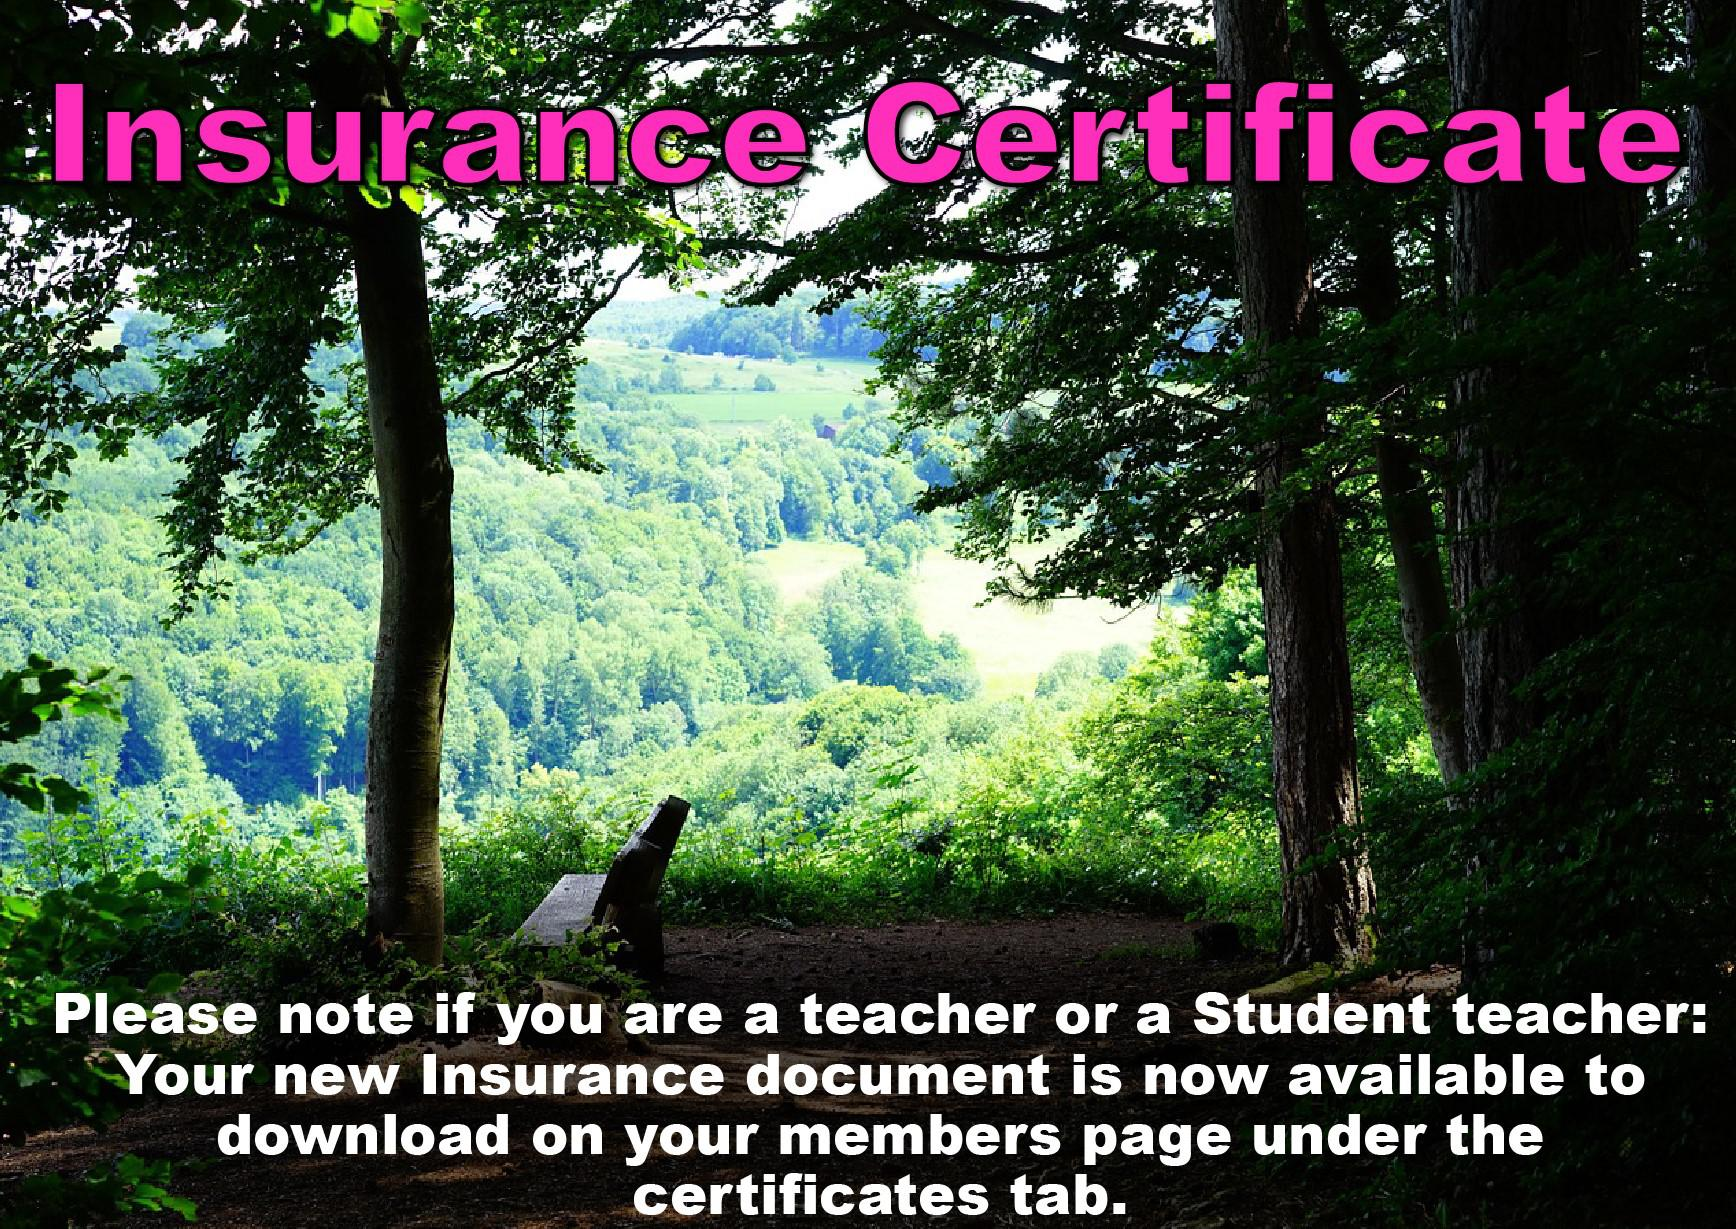 Updated Insurance certificate for Teachers and Student Teachers